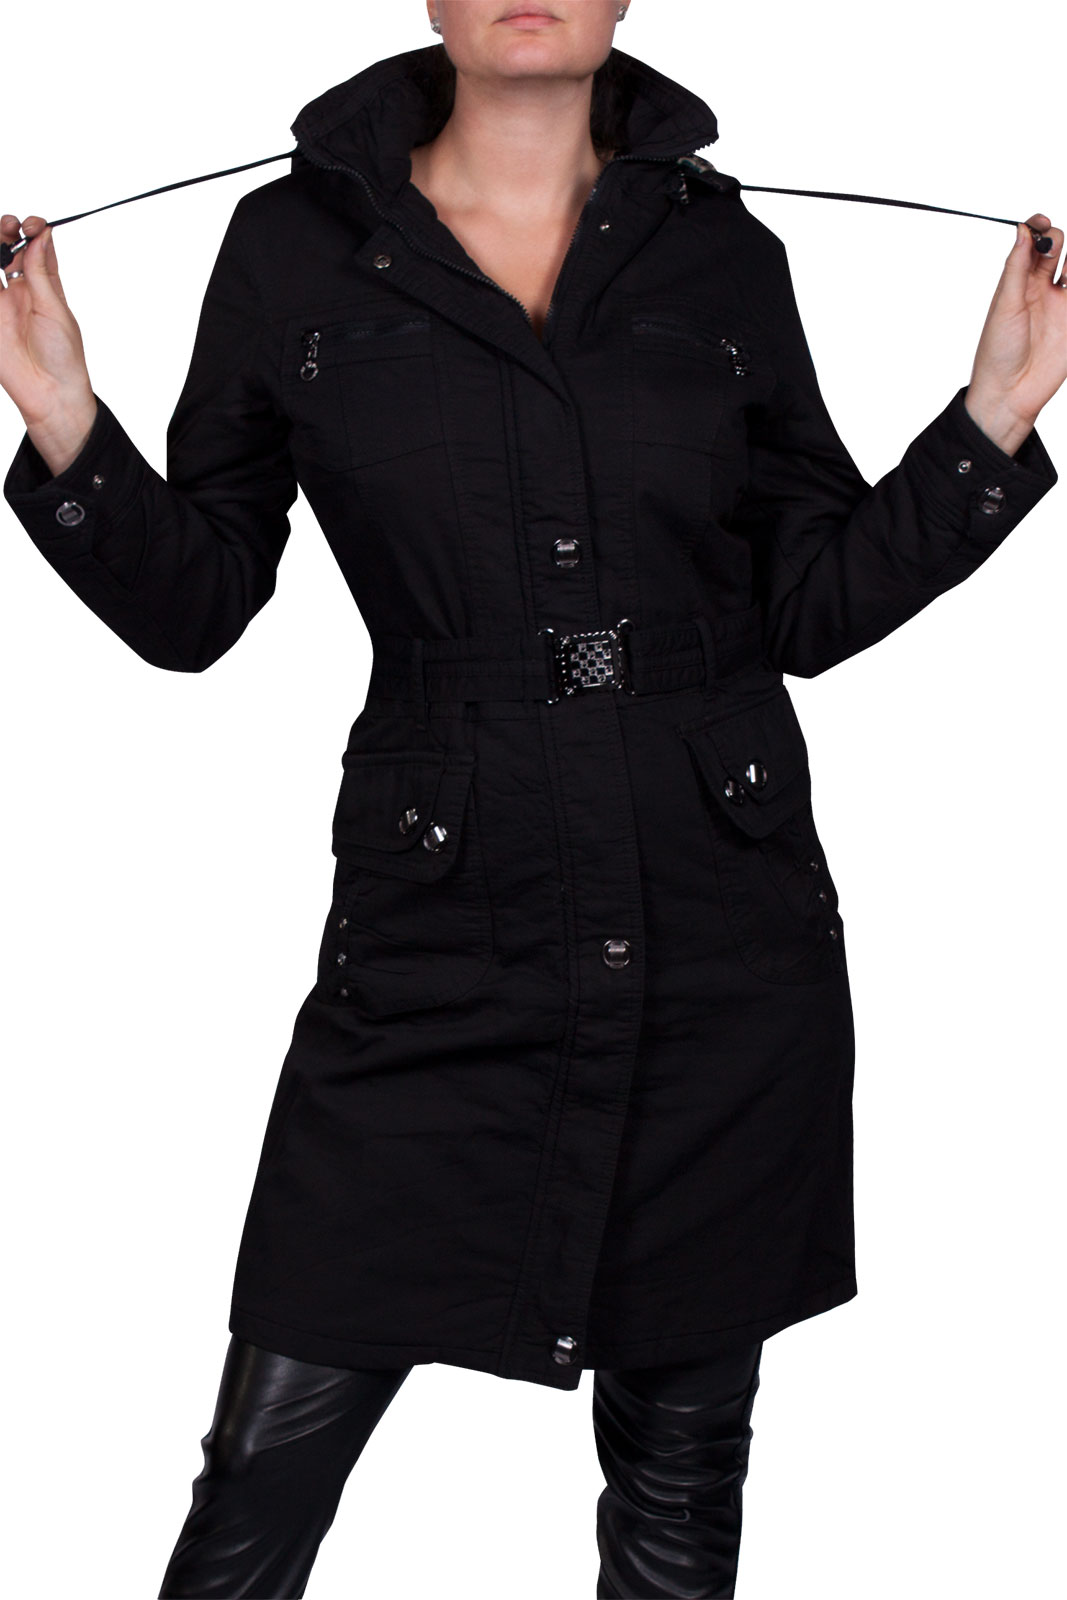 damen wintermantel trenchcoat lang cotton winterjacke parka mit kapuze schwarz l ebay. Black Bedroom Furniture Sets. Home Design Ideas